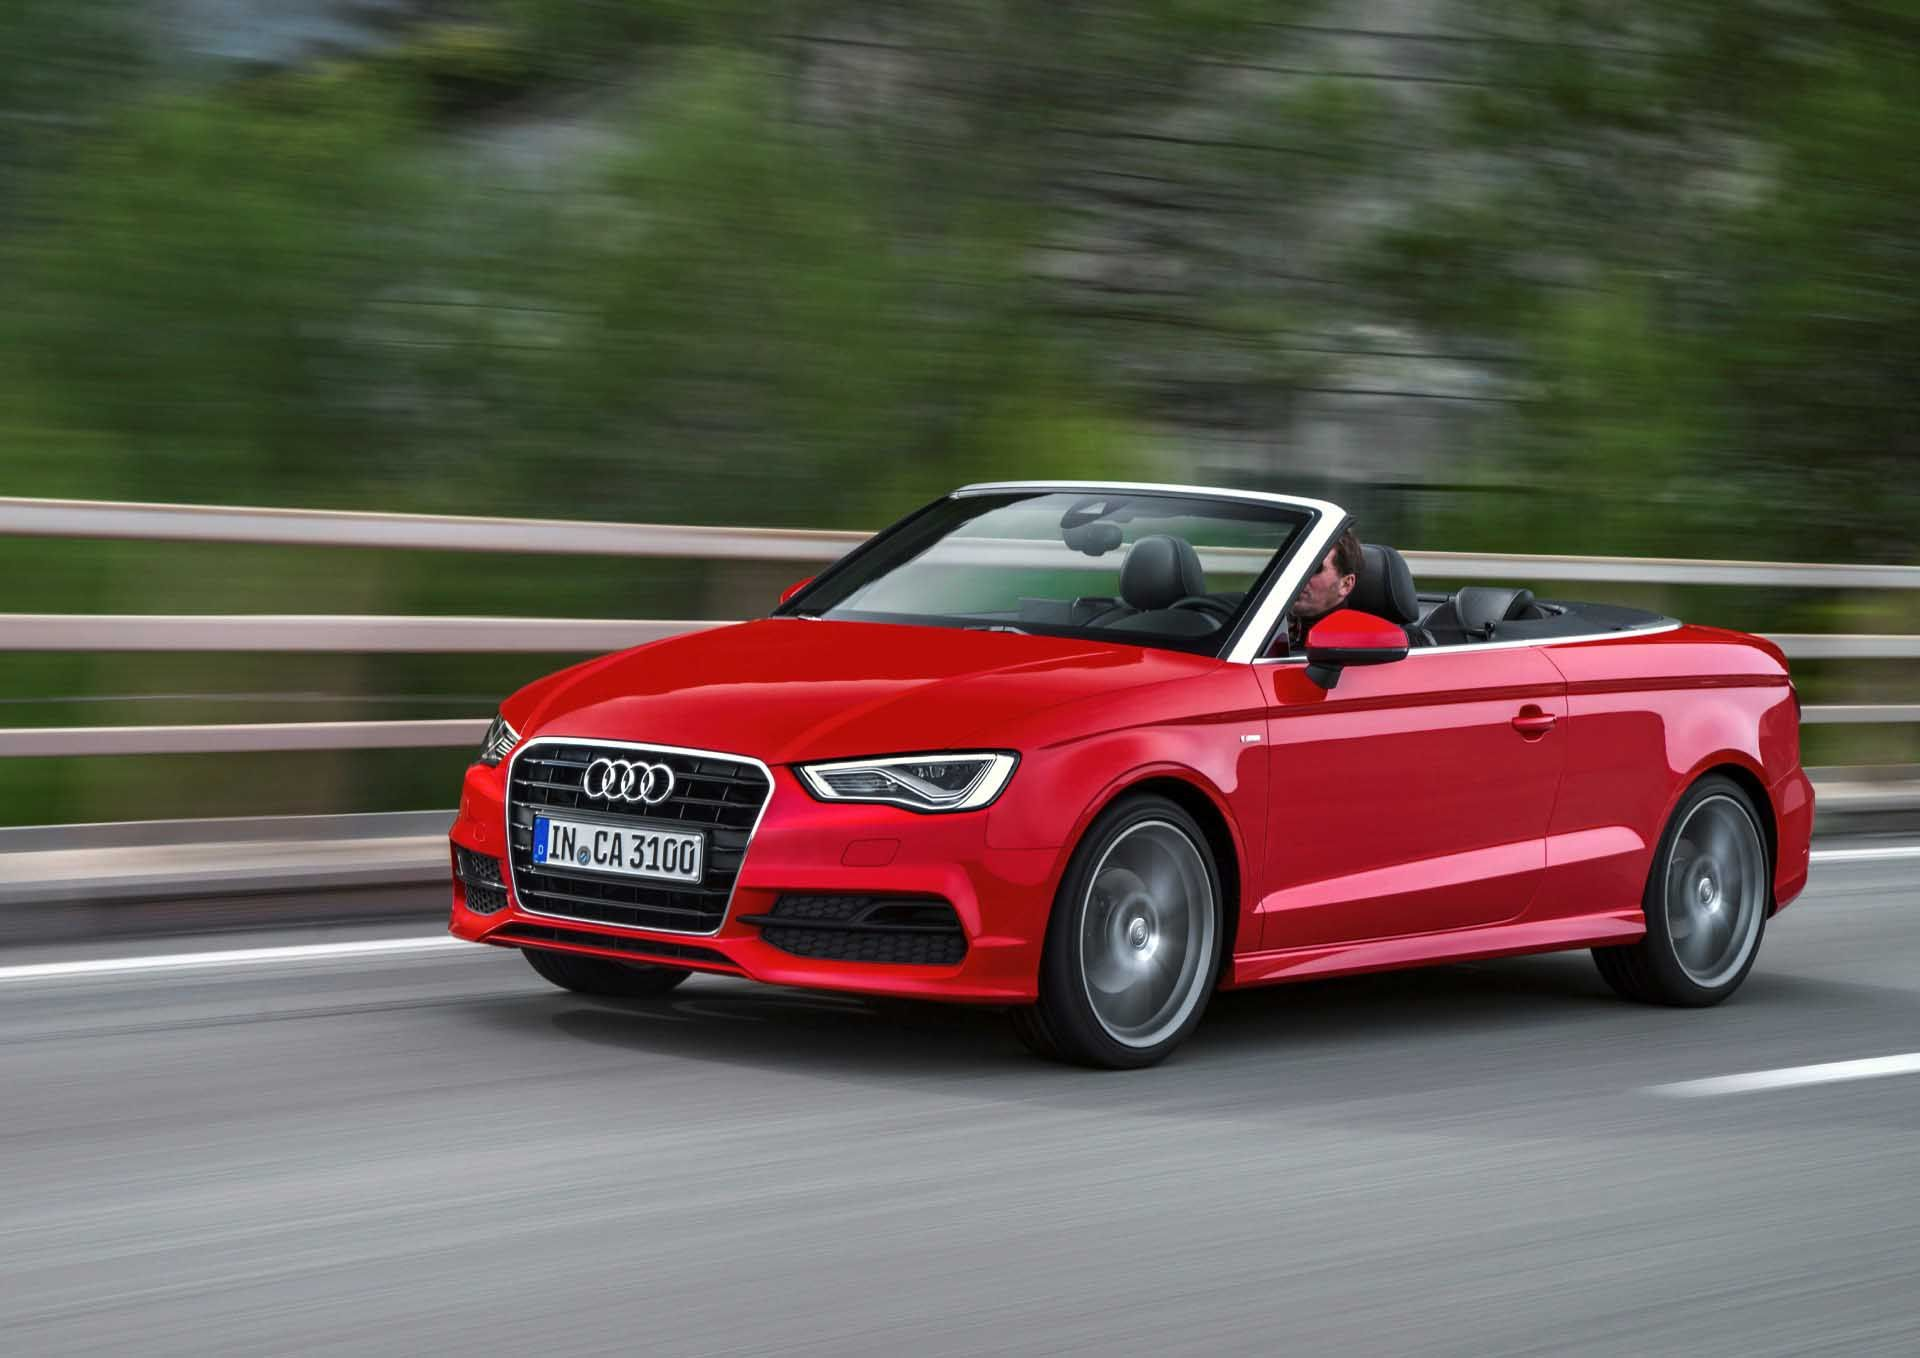 10 Beautiful Audi A3 Cabriolet Elegance Desktop Wallpaper With